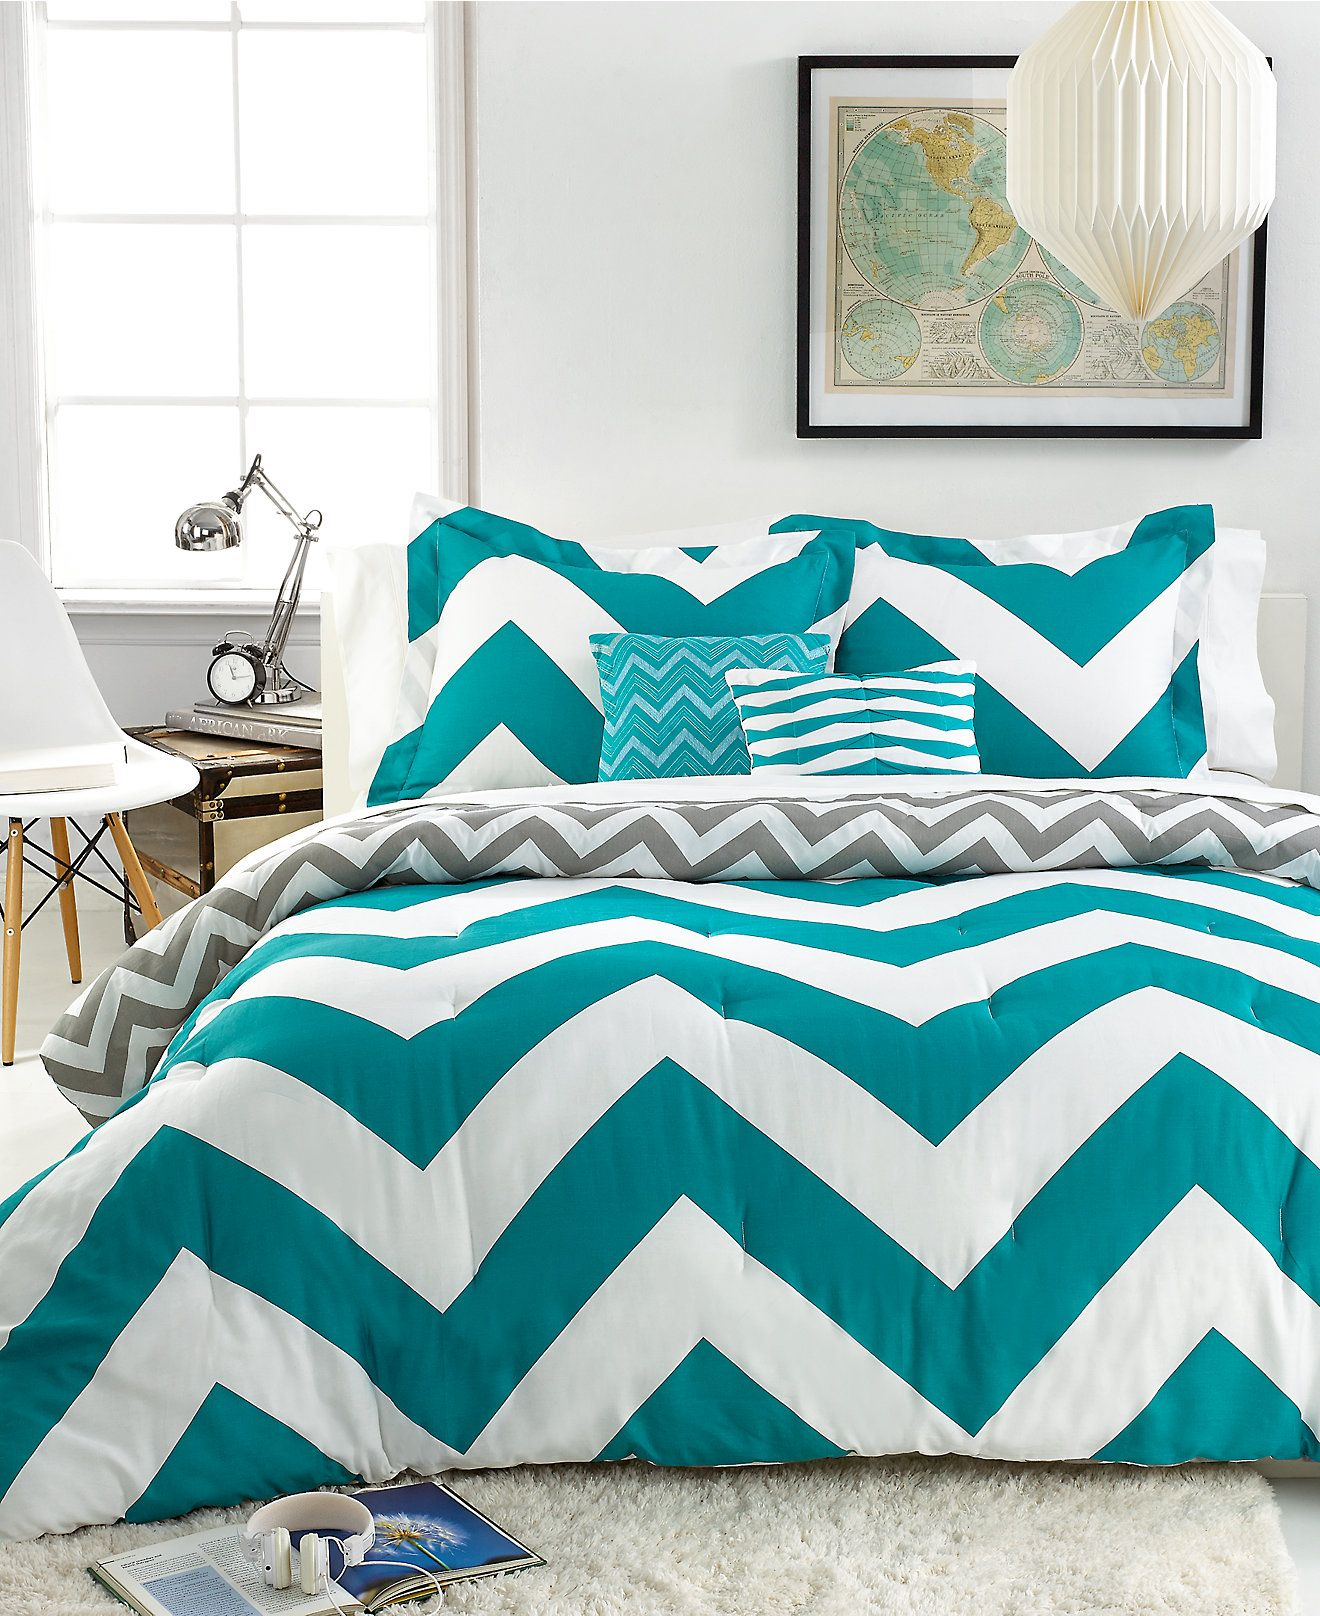 this chevron comforter set is adorable — we've gotta have it